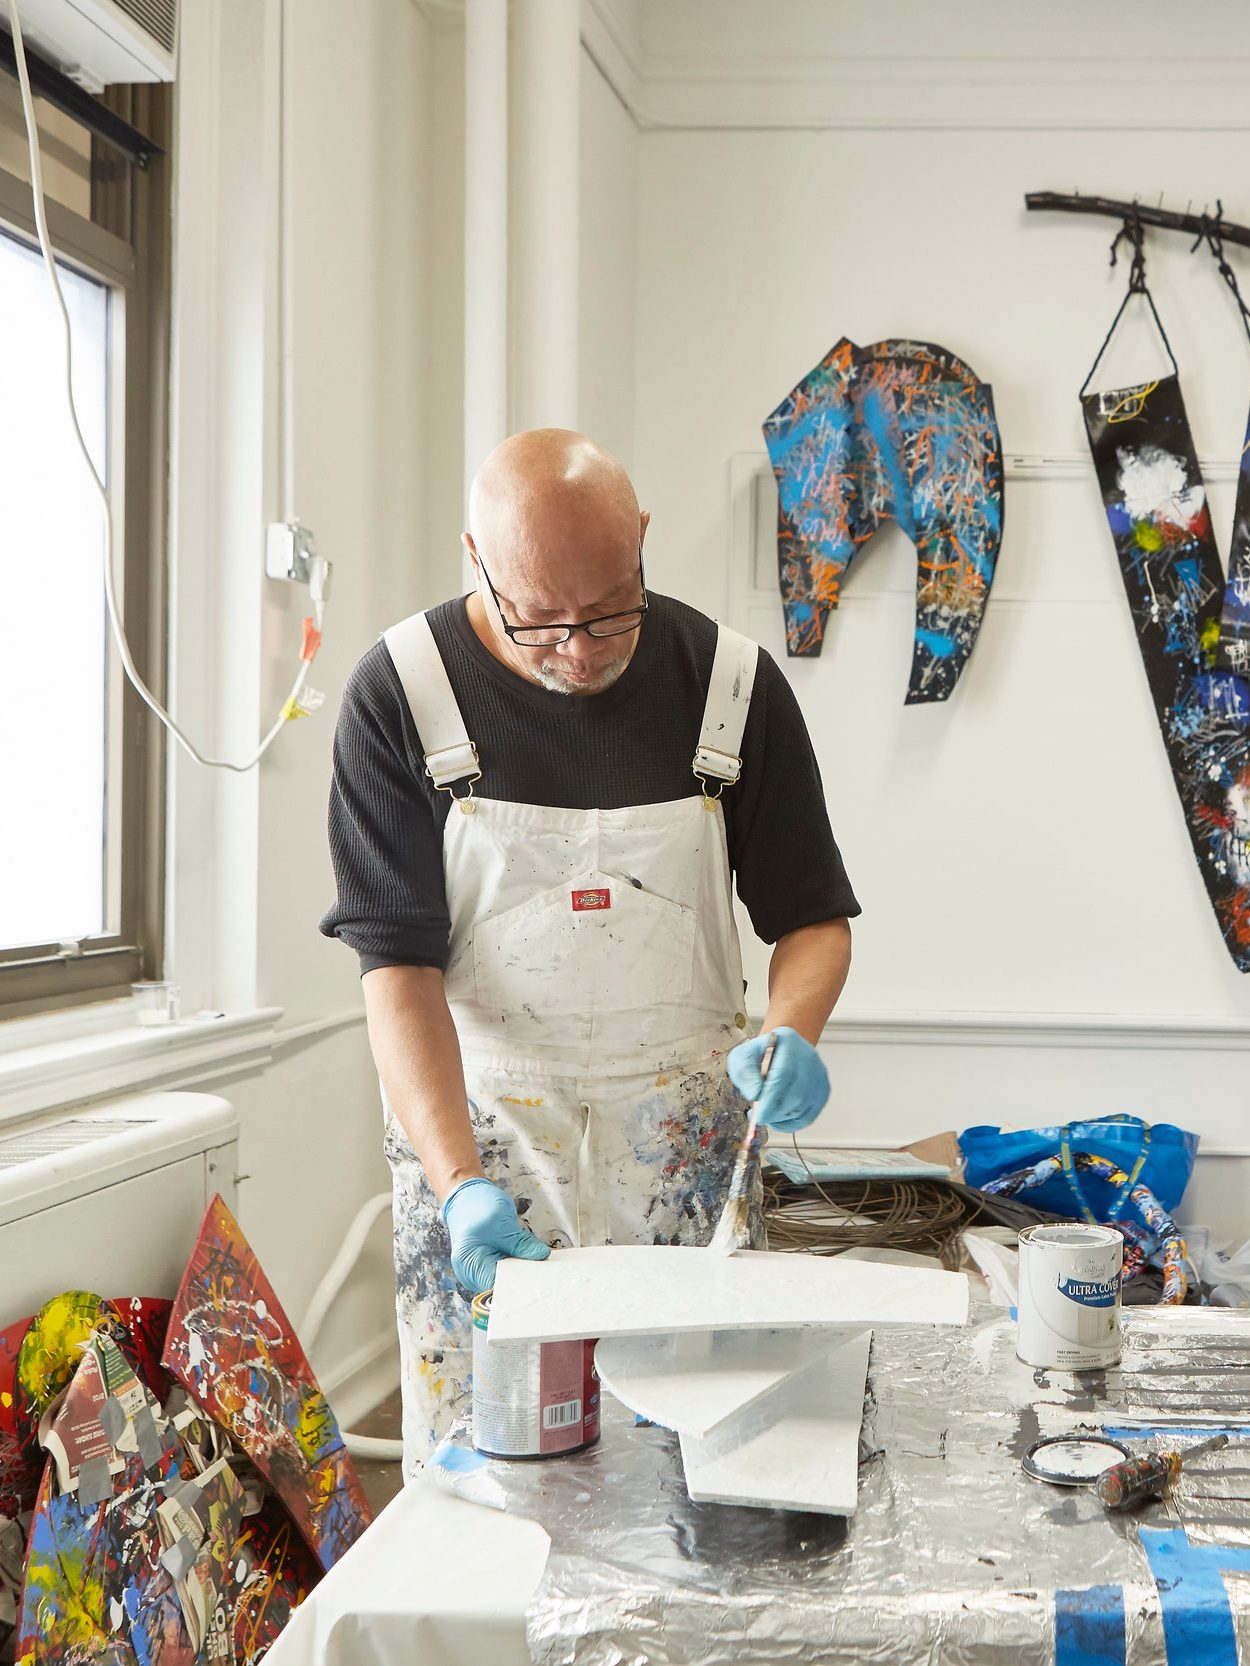 Mr. G. in 3 Dimensions - G. Kellum is an artist, painter, sculptor, and full-blown Bok legend. We sat down with him last month in his quiet, sunny studio, a space full of graphic and multi-dimensional creations. G., in his signature paint-splattered overalls, talks to us about his mission as an artist, his first tour of Bok, and the woman who motivated him to pursue his passion.